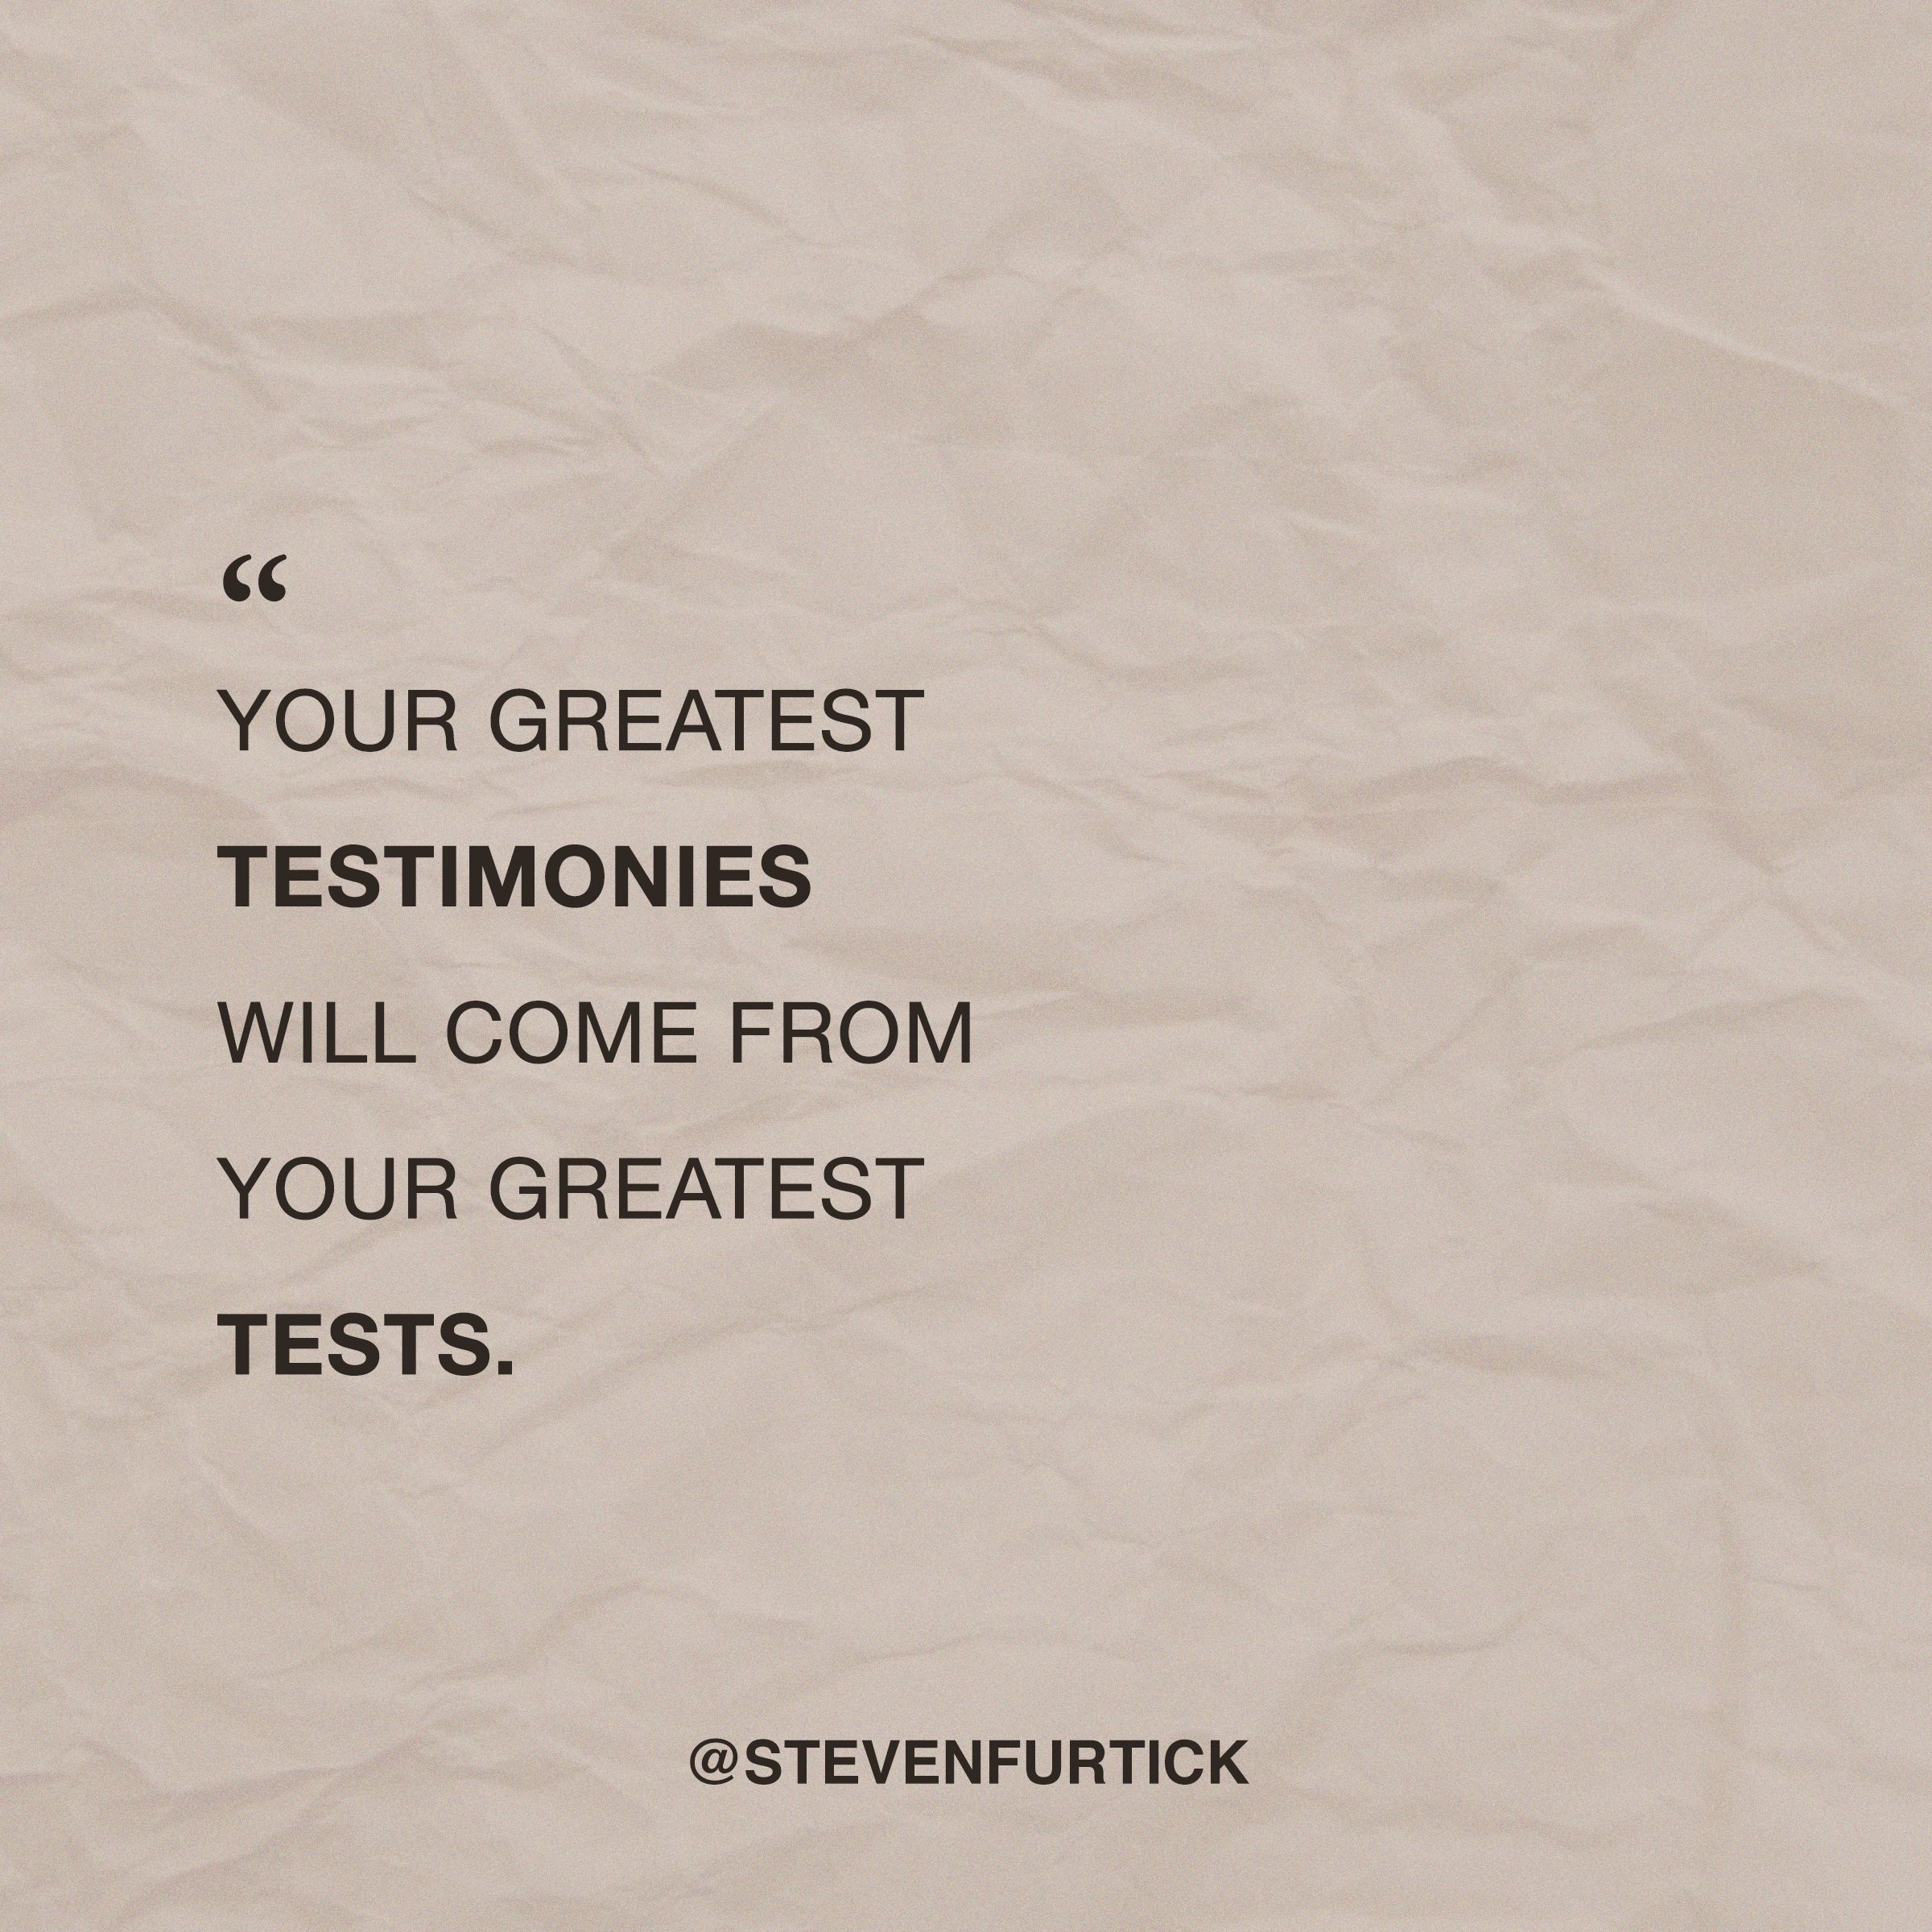 Your greatest testimonies will come from your greatest tests ...